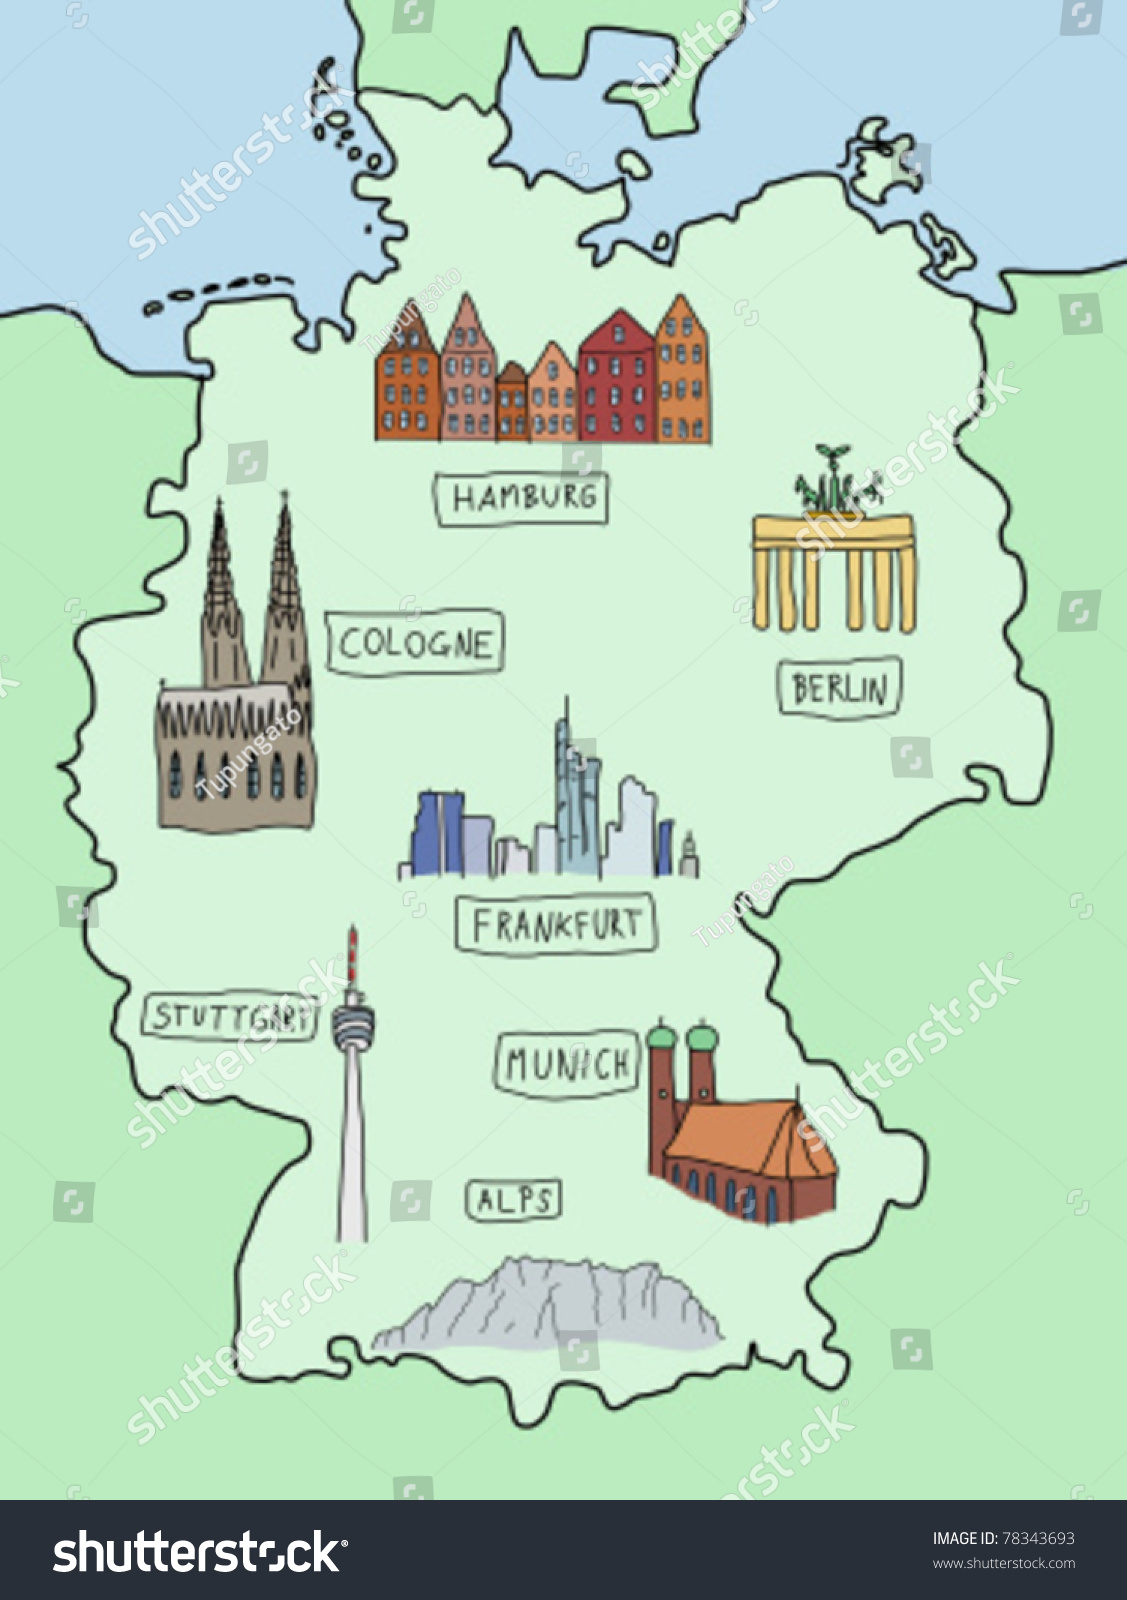 how to say stuttgart in german